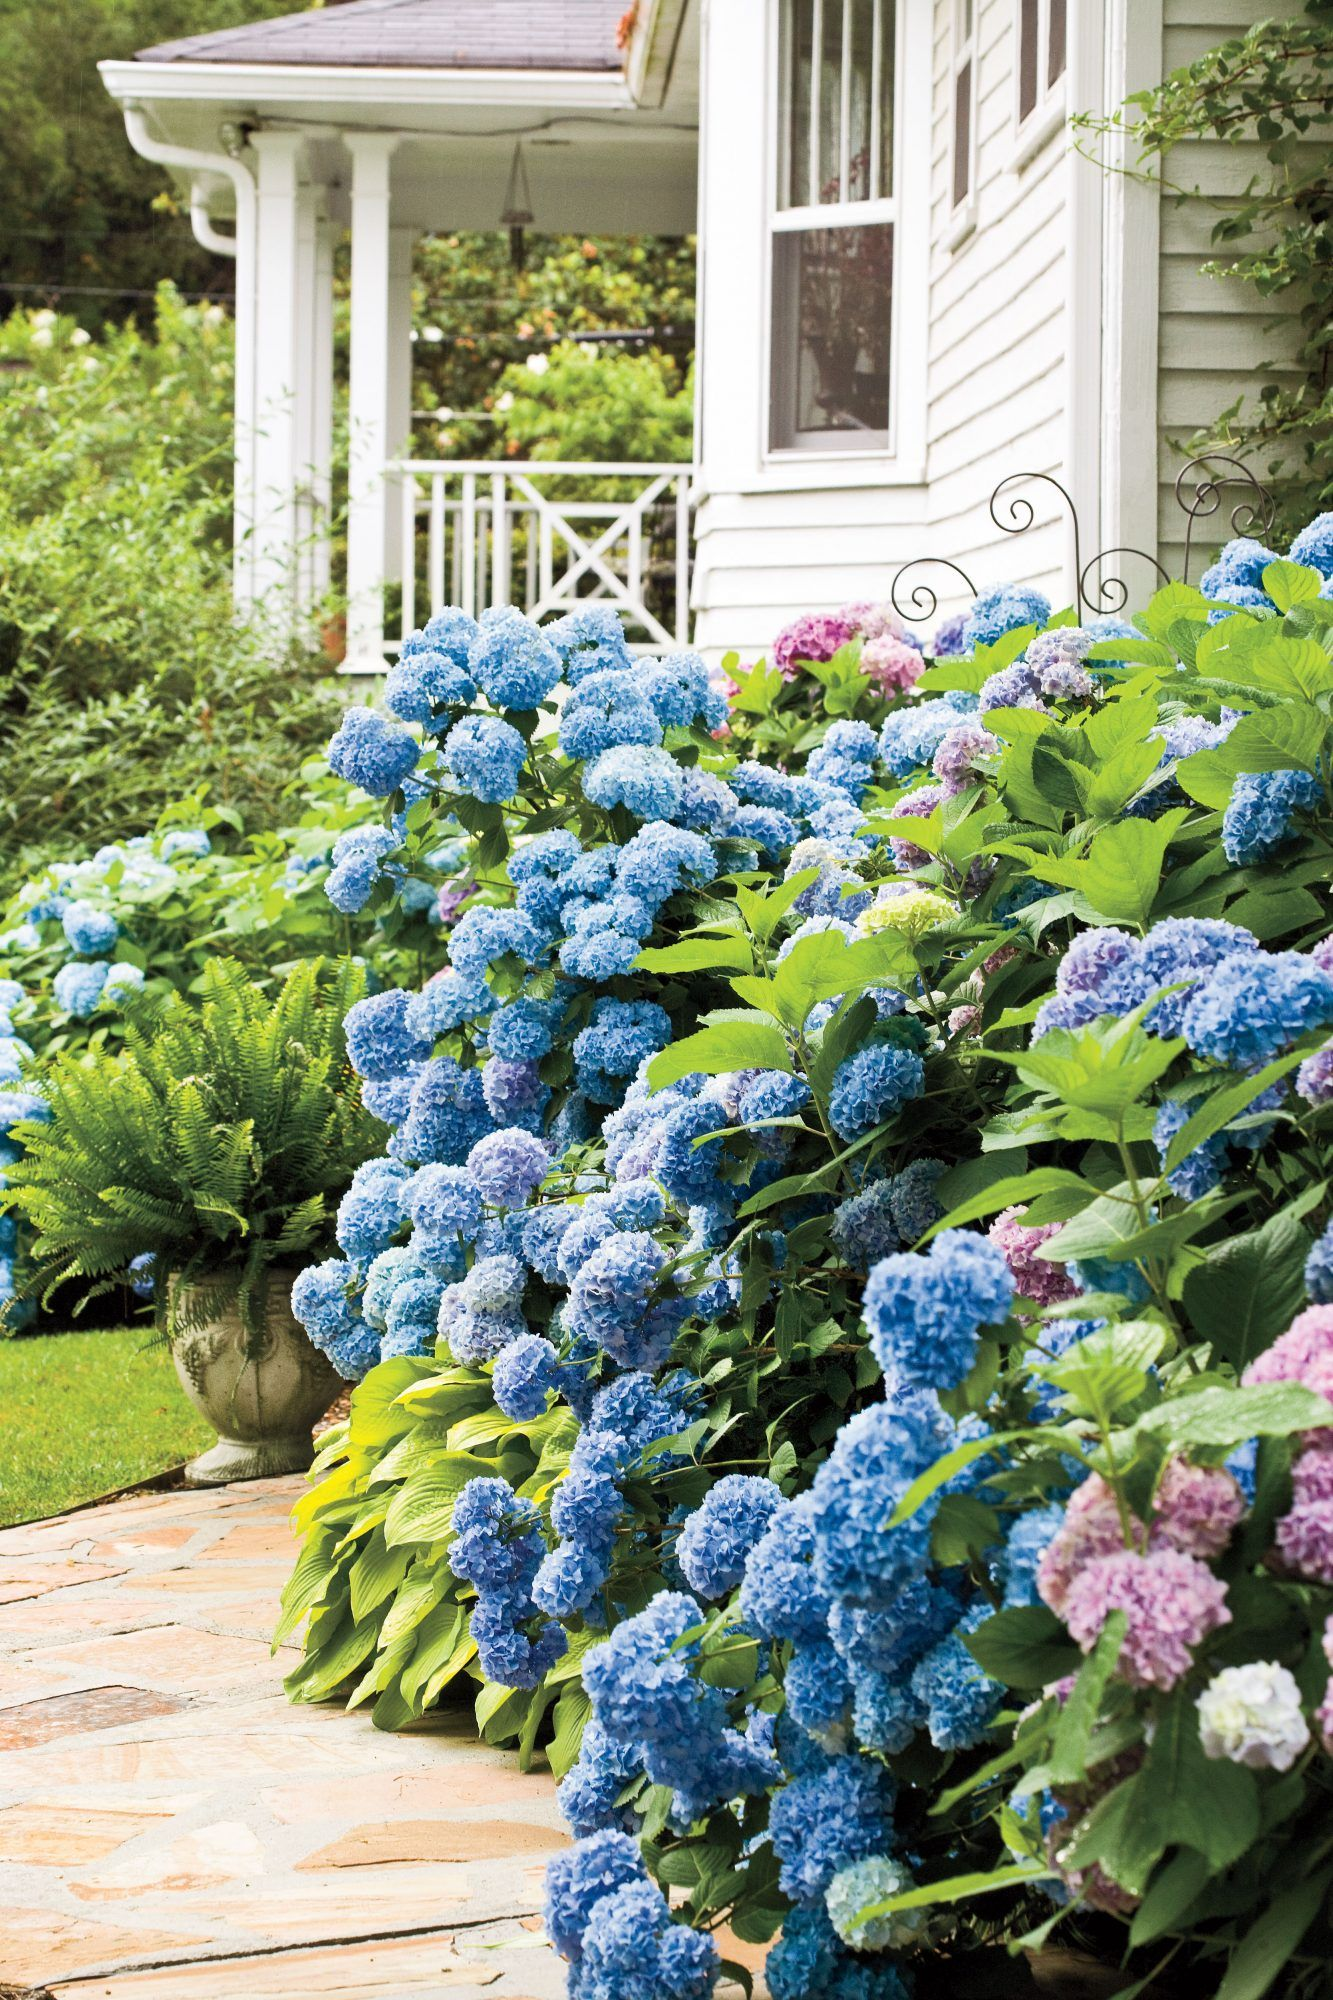 Learn When to Prune Different Hydrangeas in Your Garden